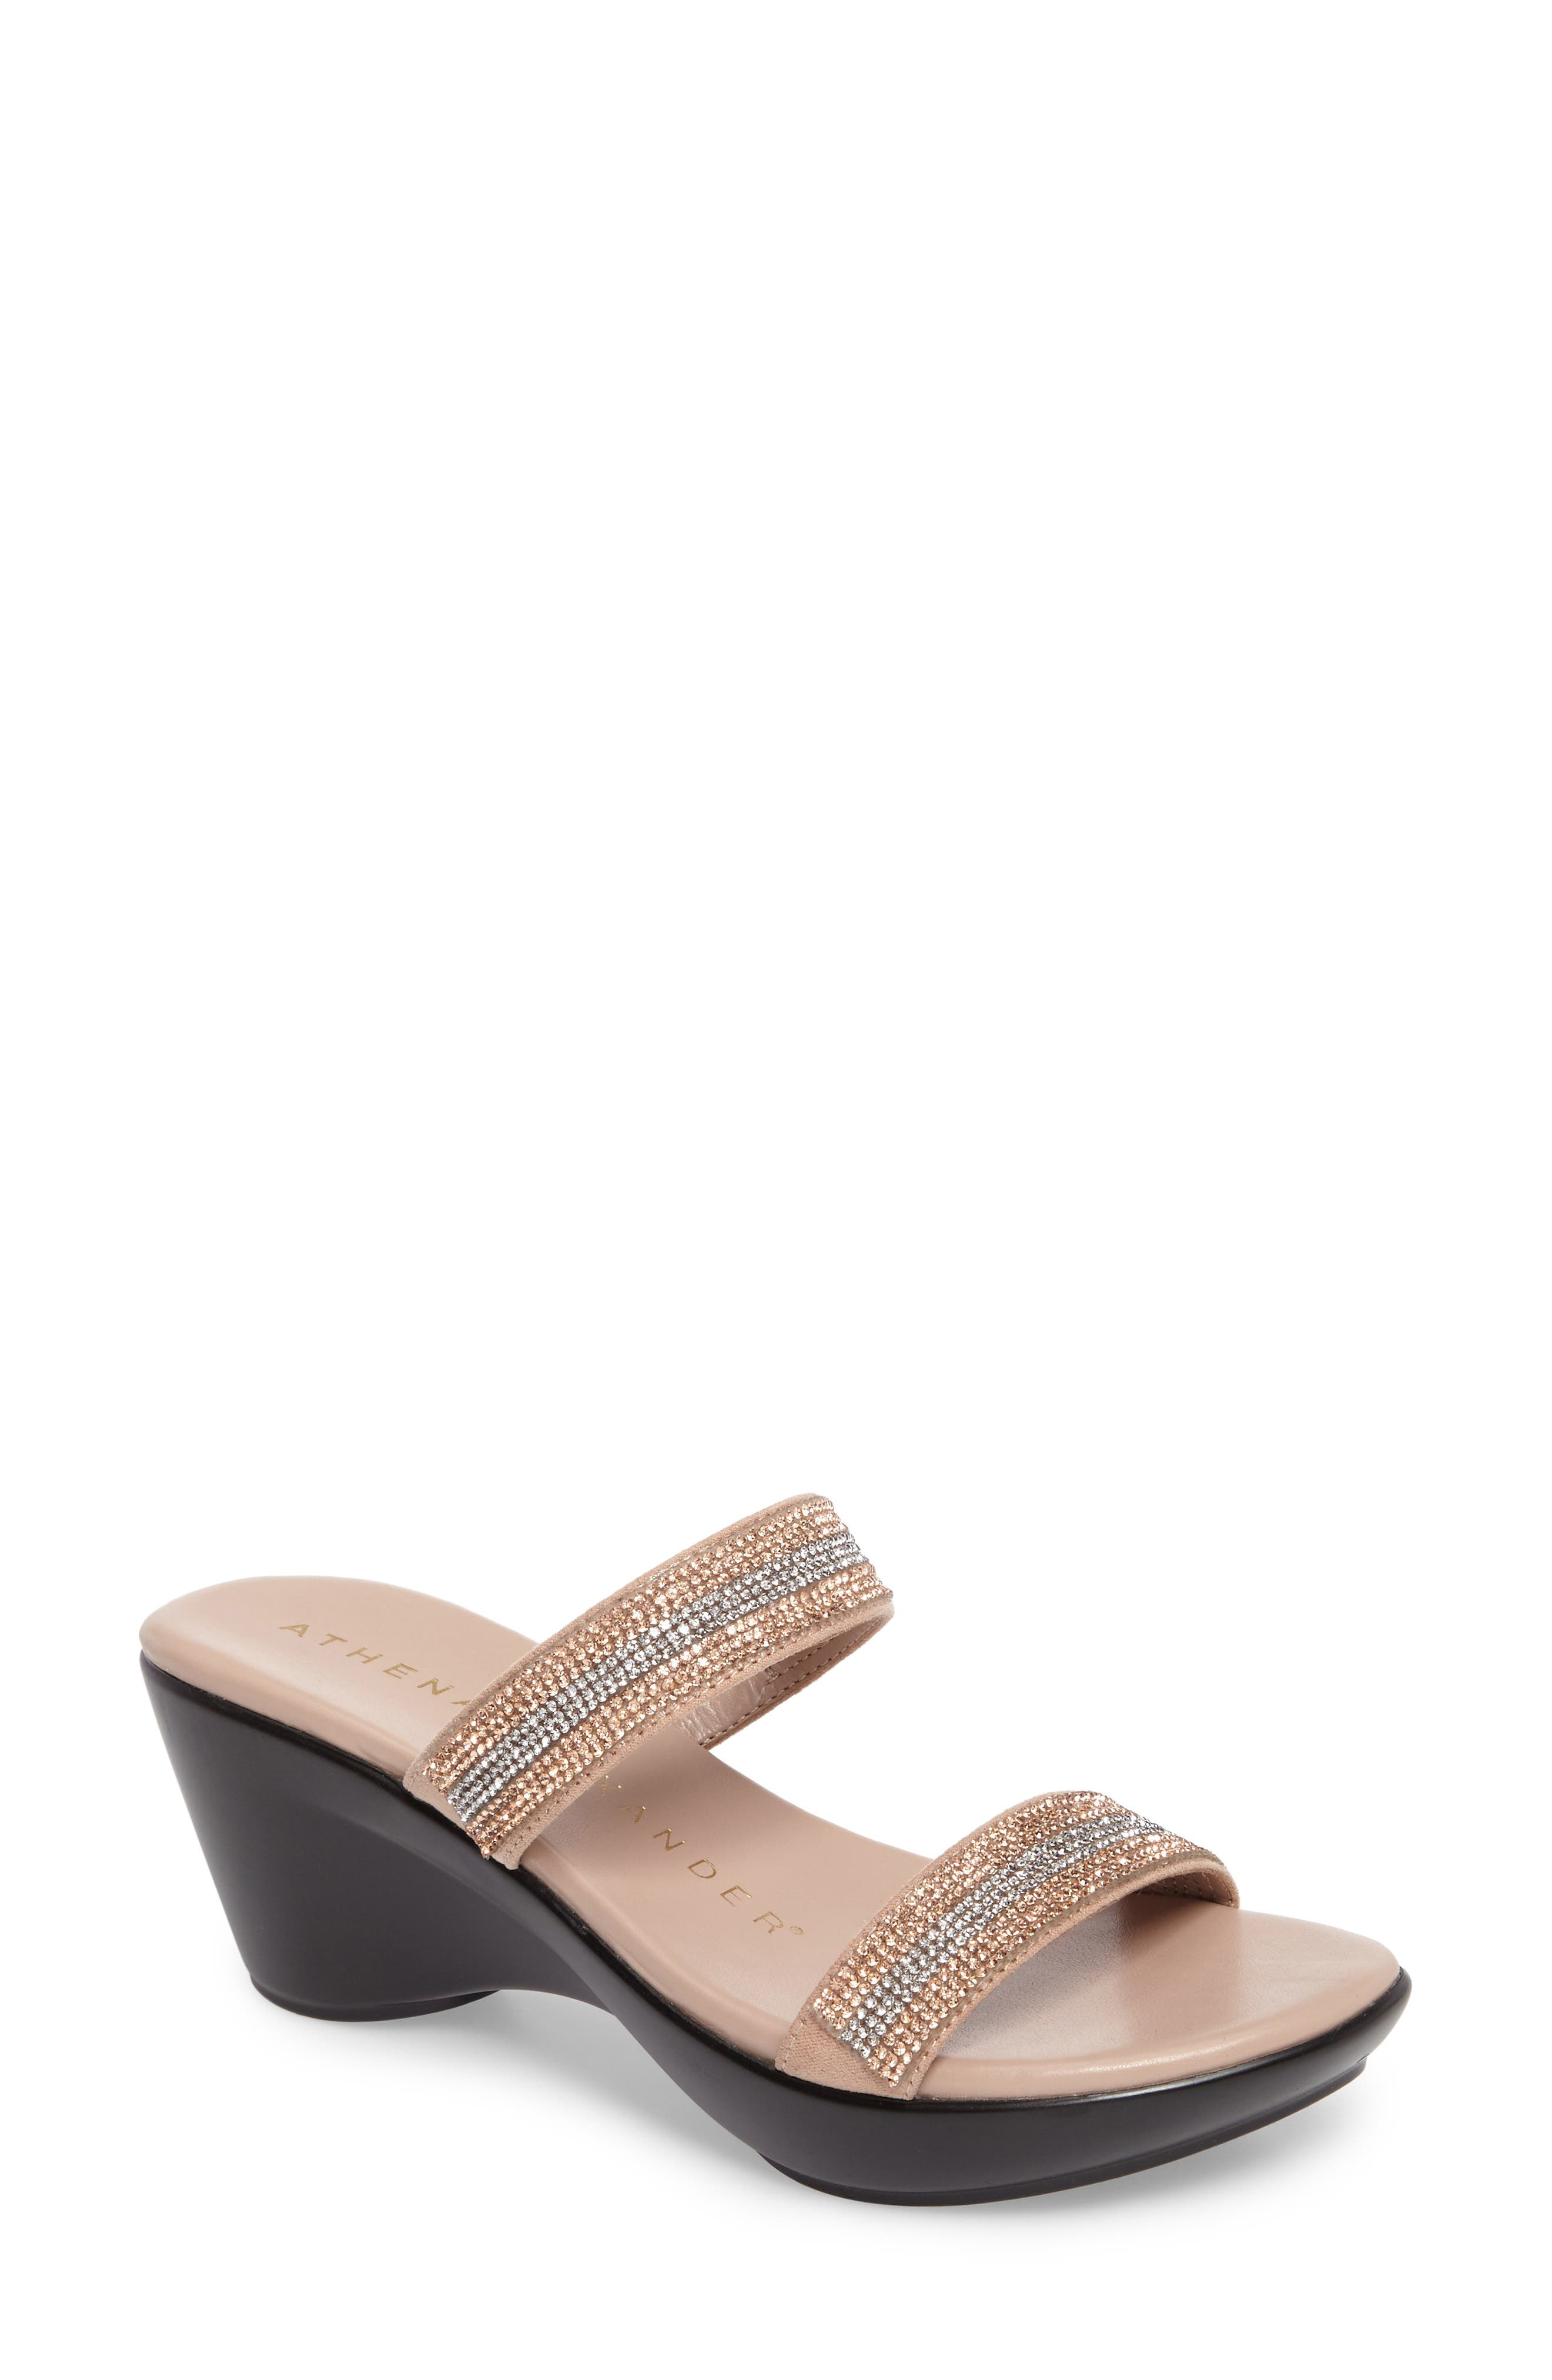 Arlo Wedge Sandal,                             Main thumbnail 1, color,                             Rose Gold Synthetic